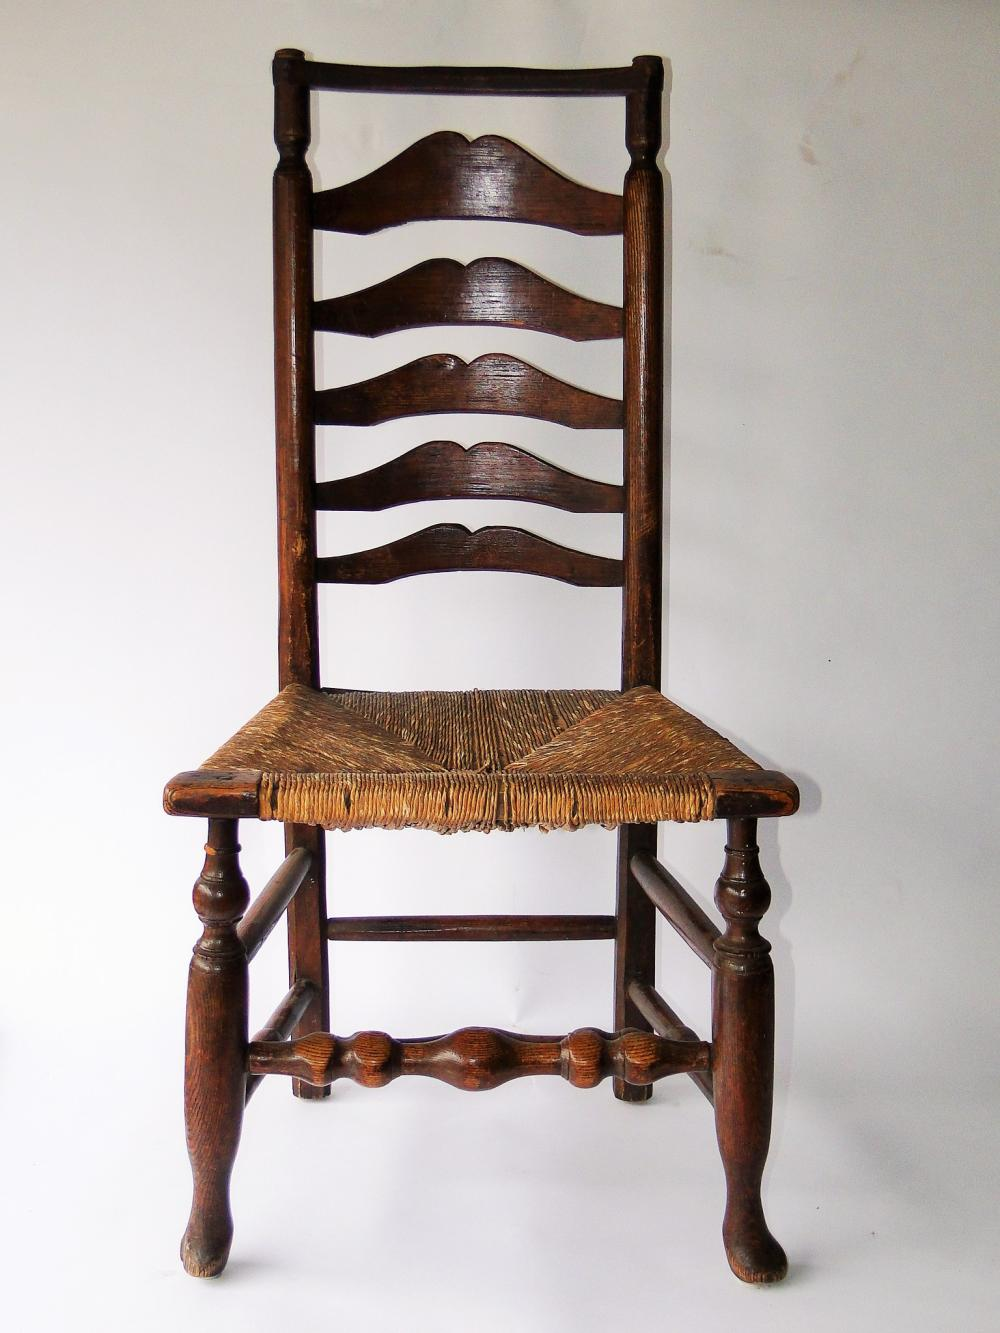 WILLIAM AND MARY PERIOD CHAIR